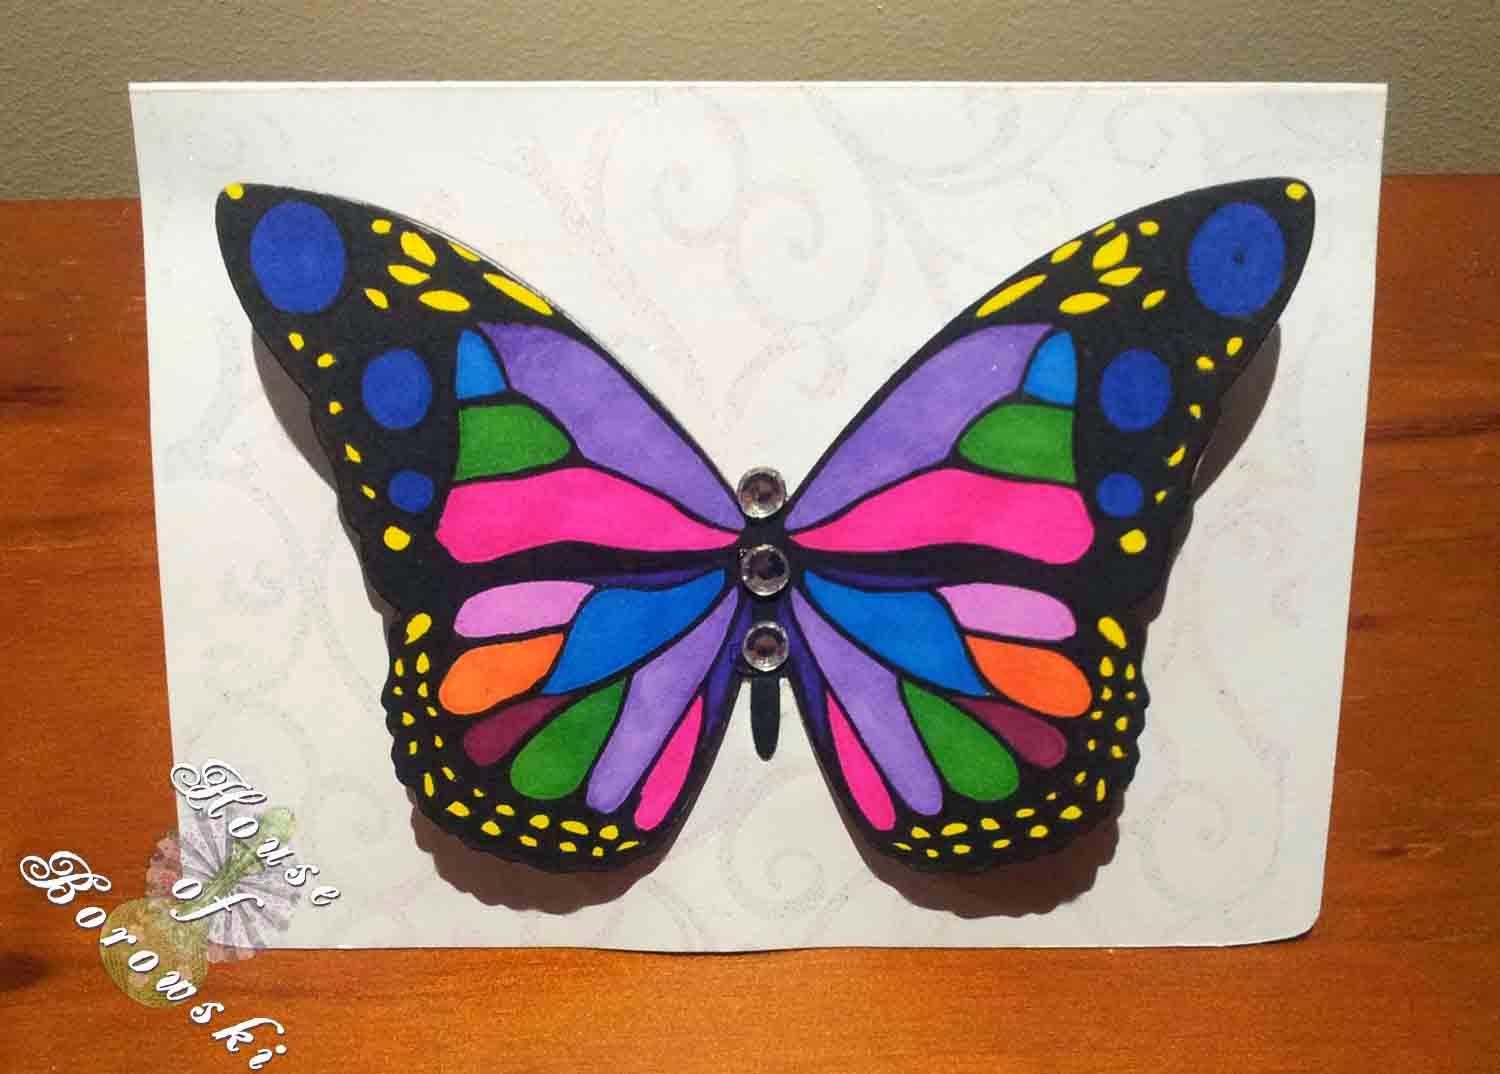 HOB Kaszazz Flutterblys,Sizzix with hero arts,bic markit, distress inks, versamark ink, clear iridescent embossing powder